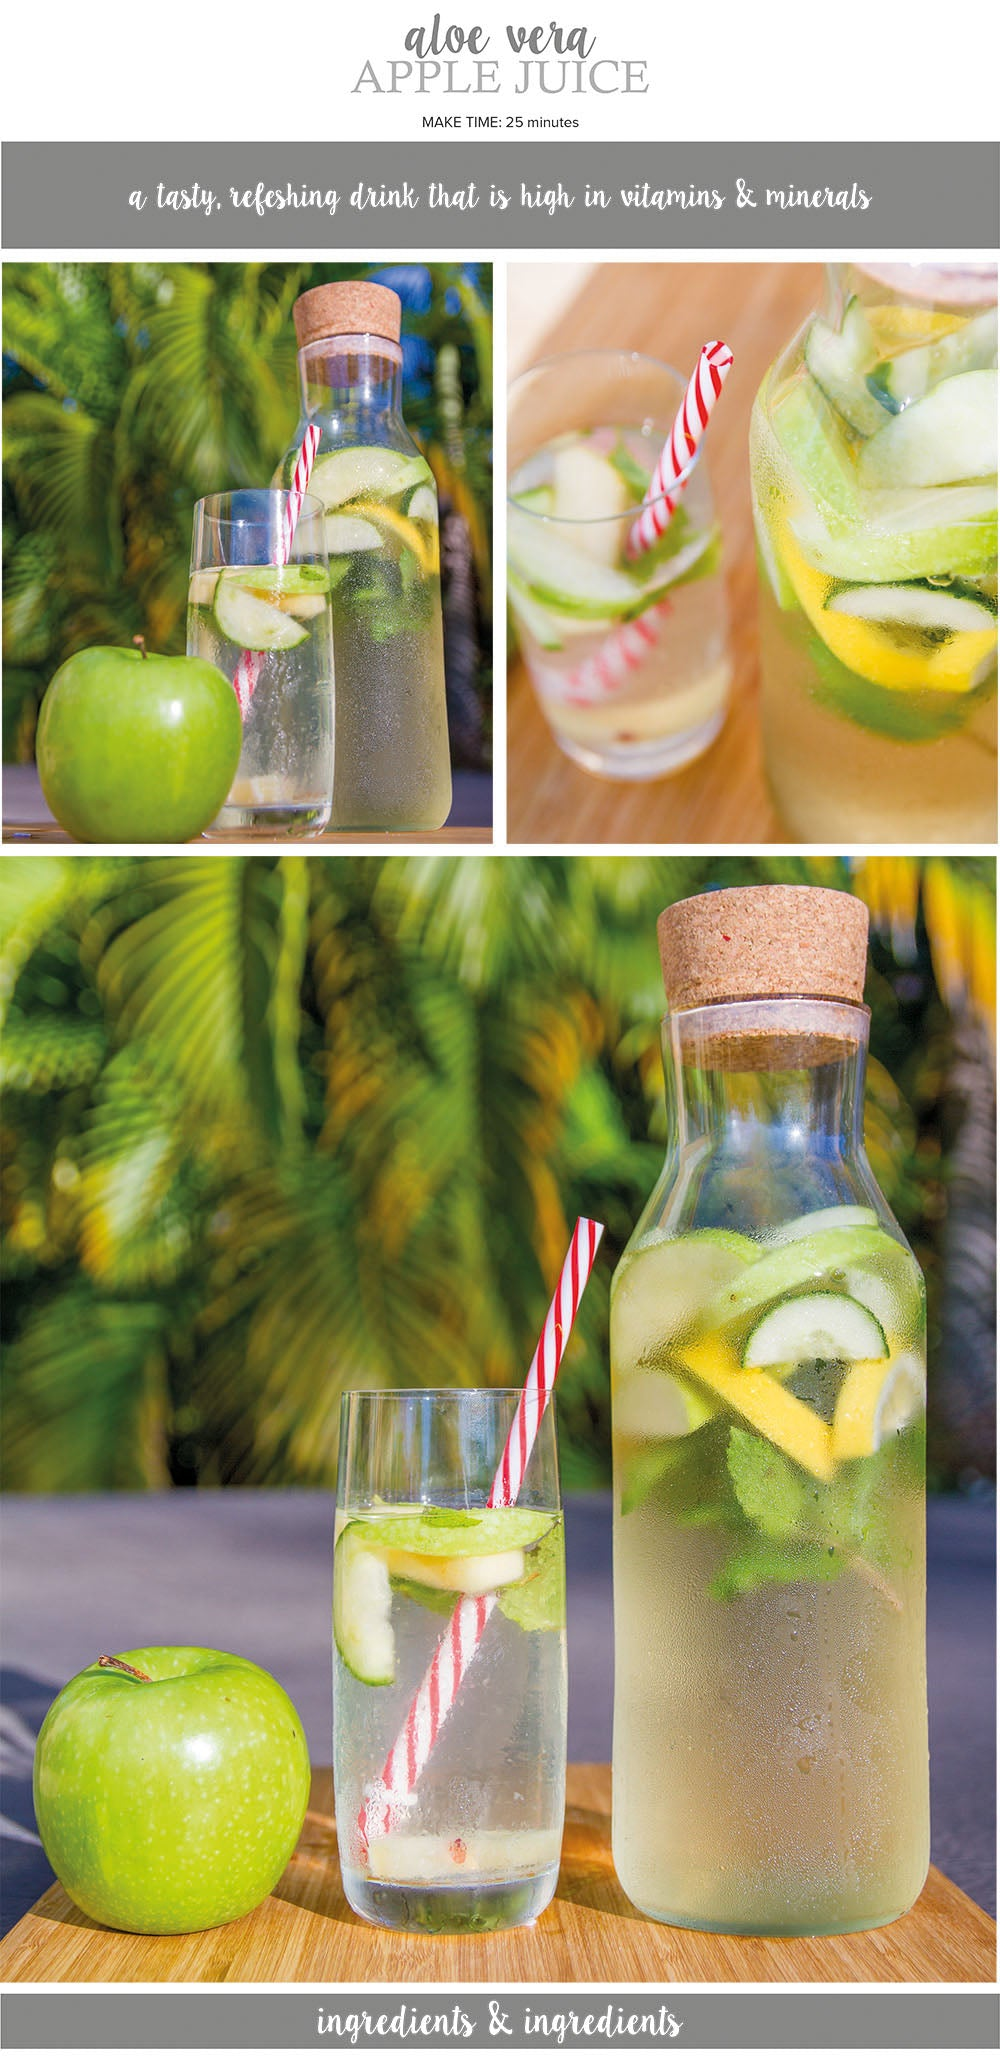 Aloe vera apple juice recipe